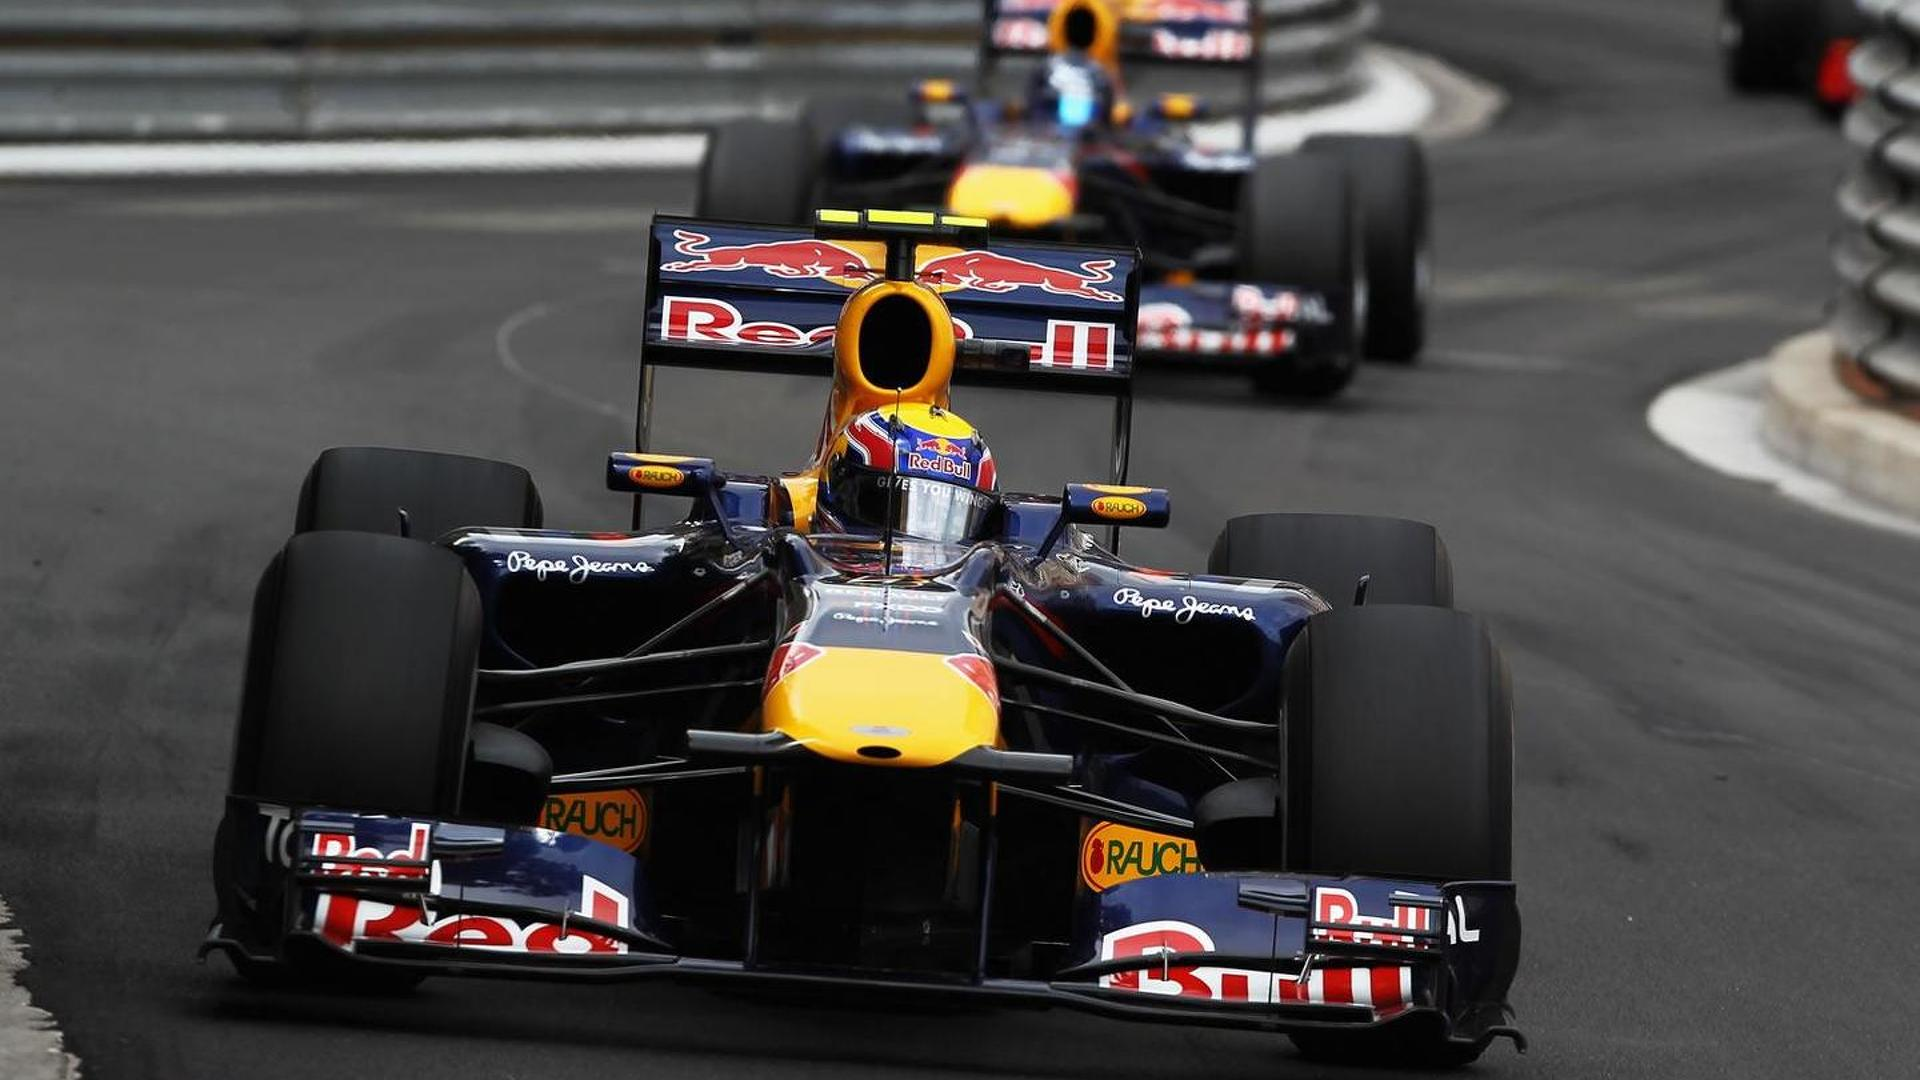 Red Bull has led 67pc of laps in 2011